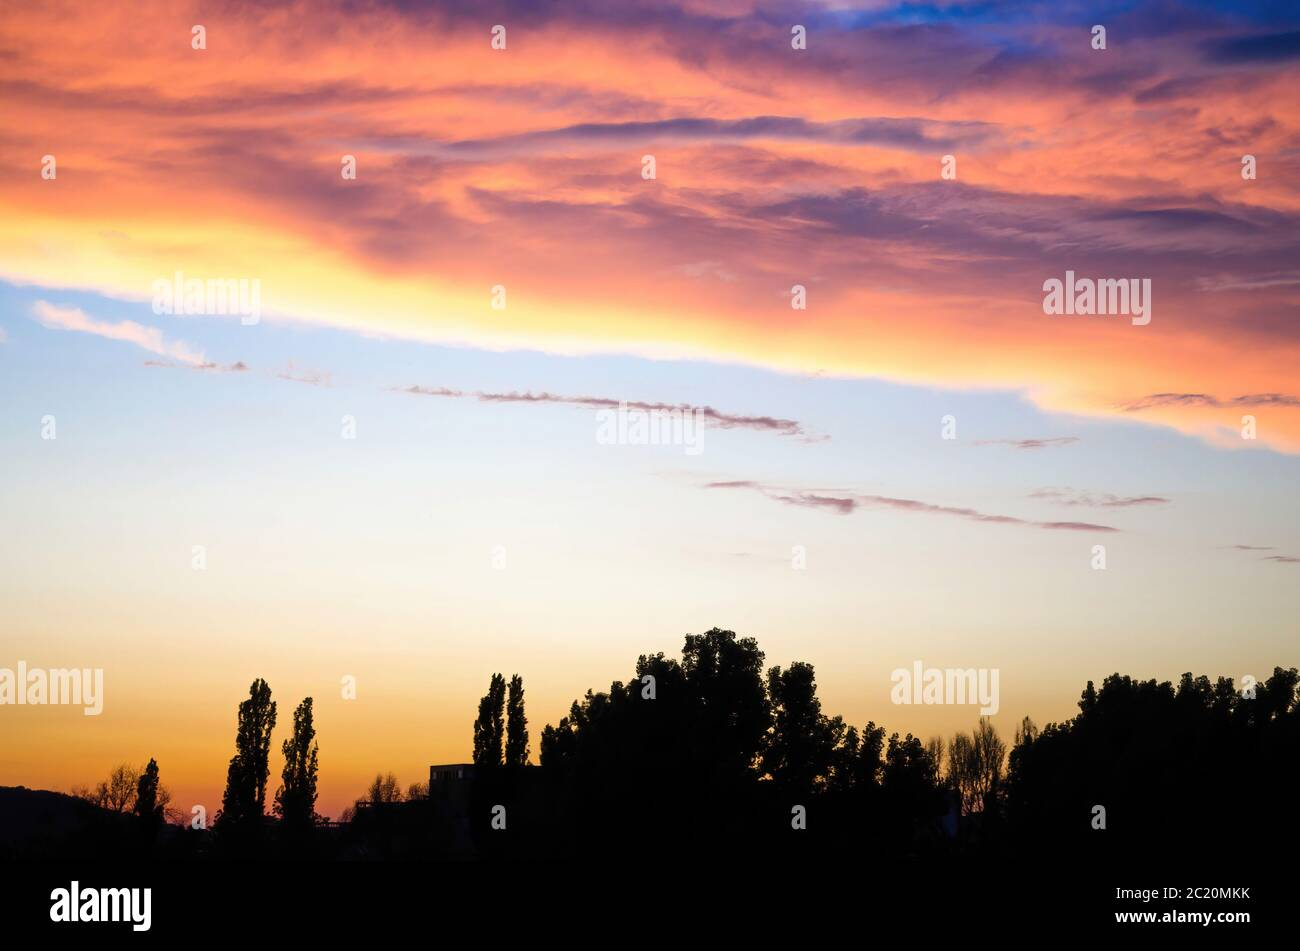 Bright pink clouds floating on sunset sky over silhouettes of trees in evening in countryside Stock Photo